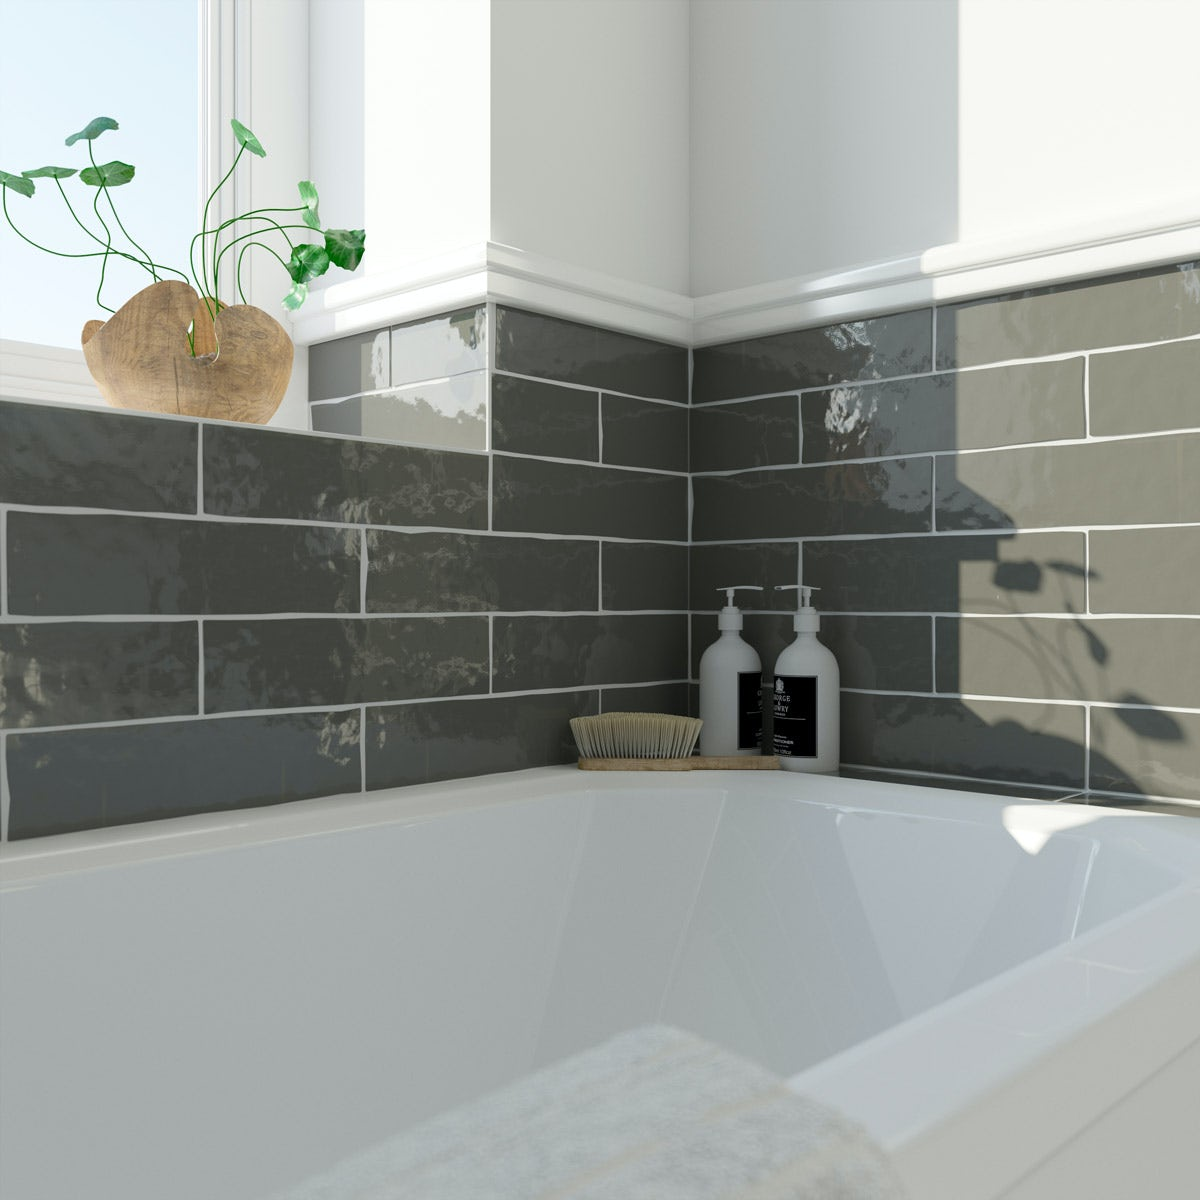 Laura Ashley Artisan charcoal grey gloss wall tile 75mm x 300mm